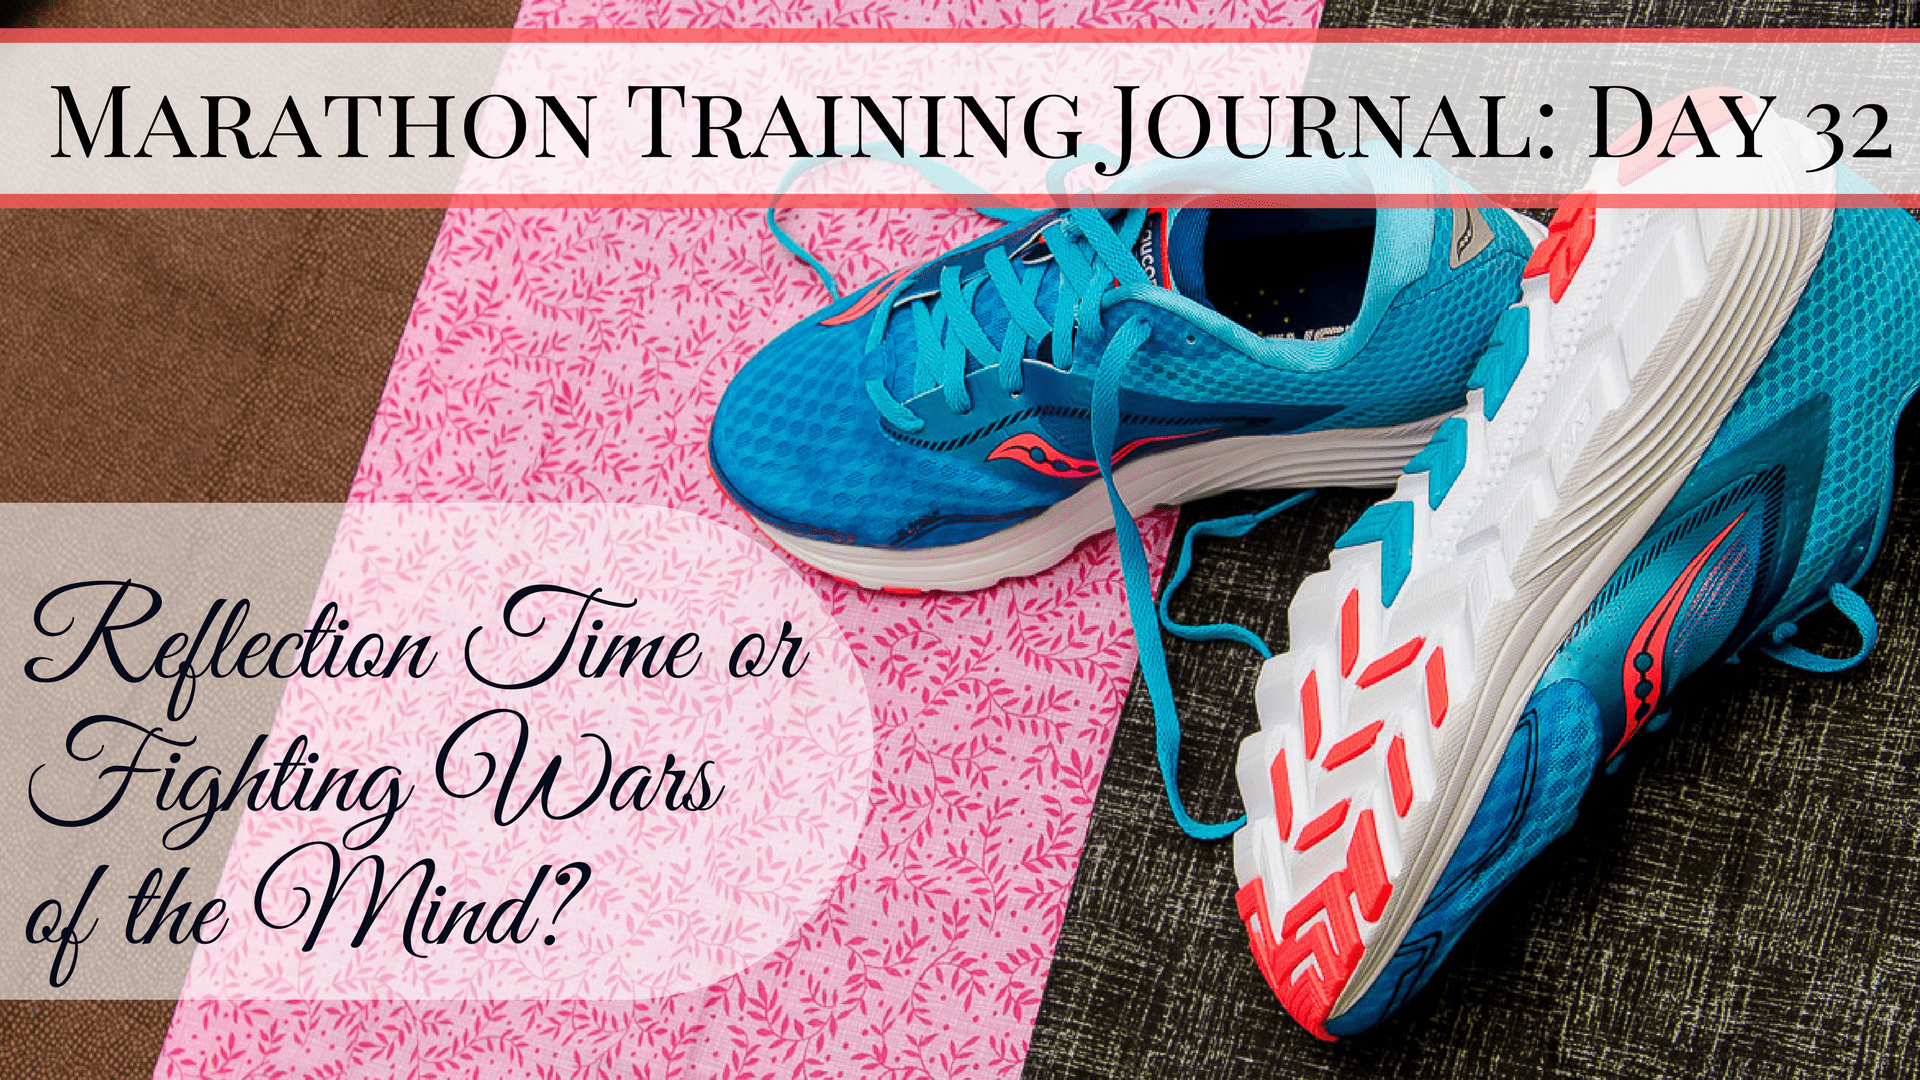 Marathon Training Journal- Day 32